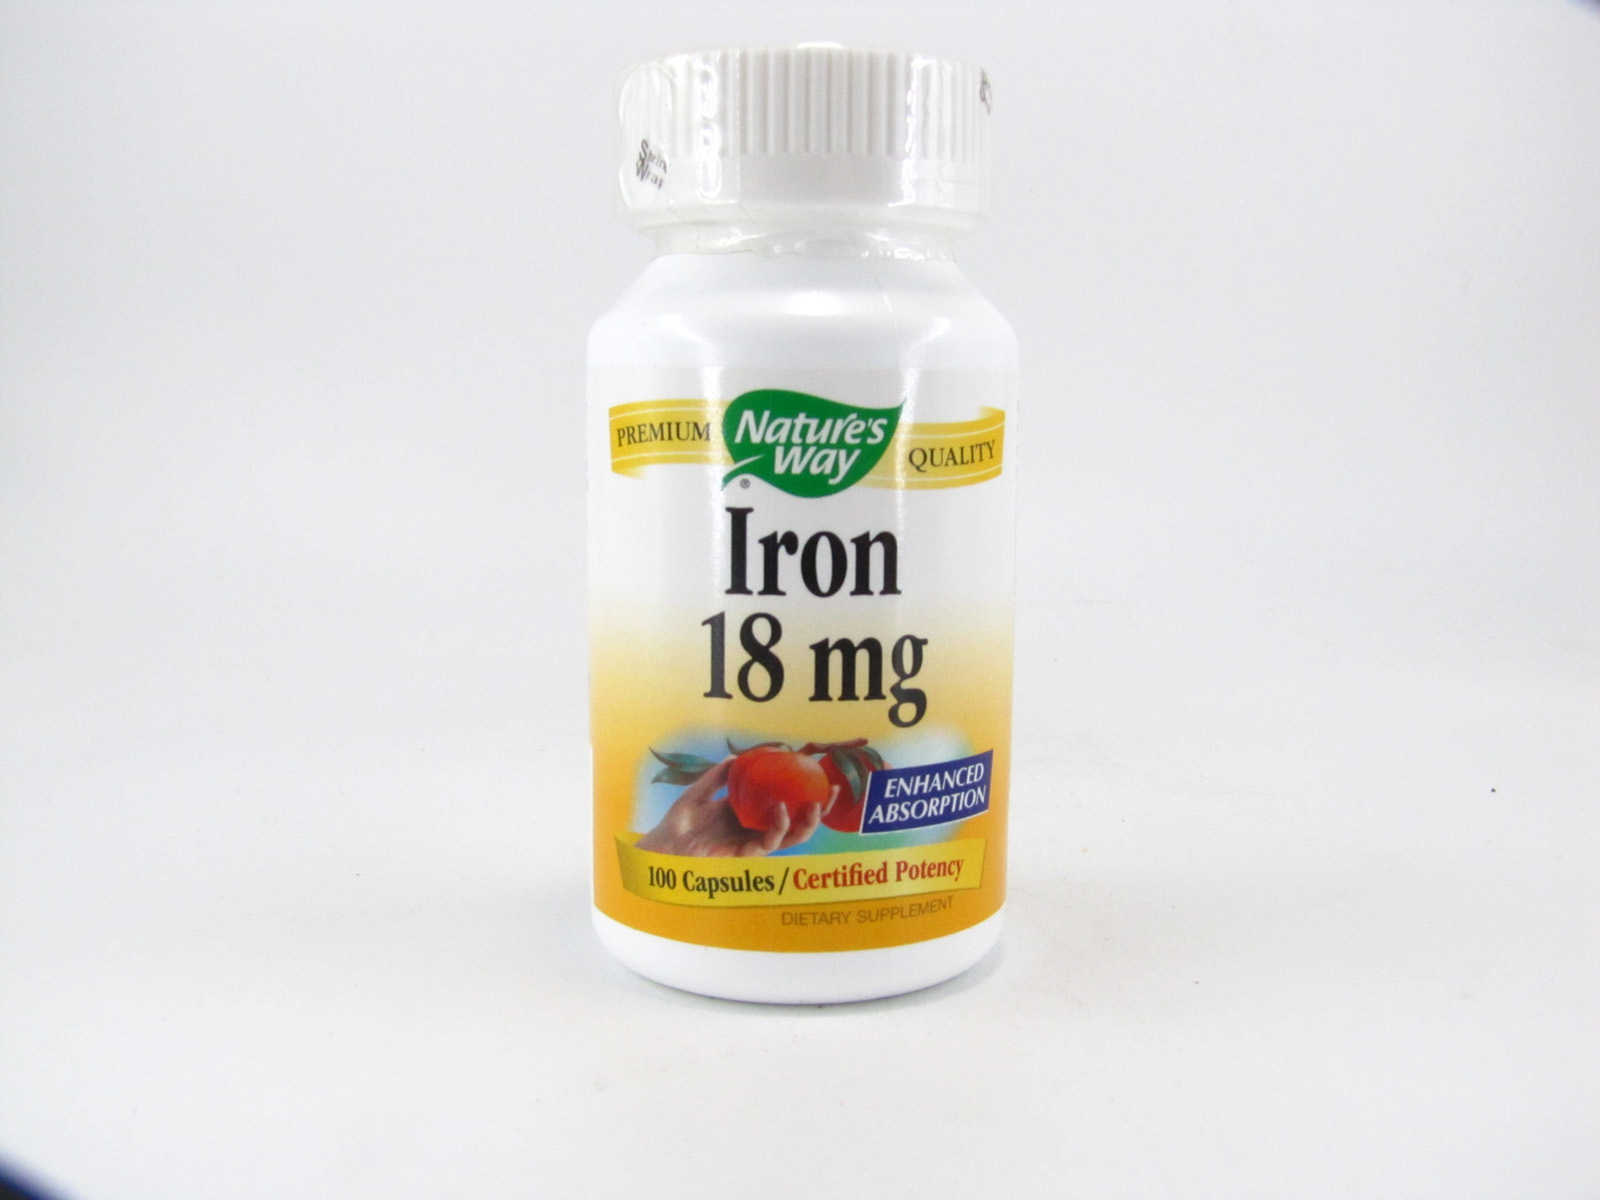 Nature's Way Iron 18 mg - front view